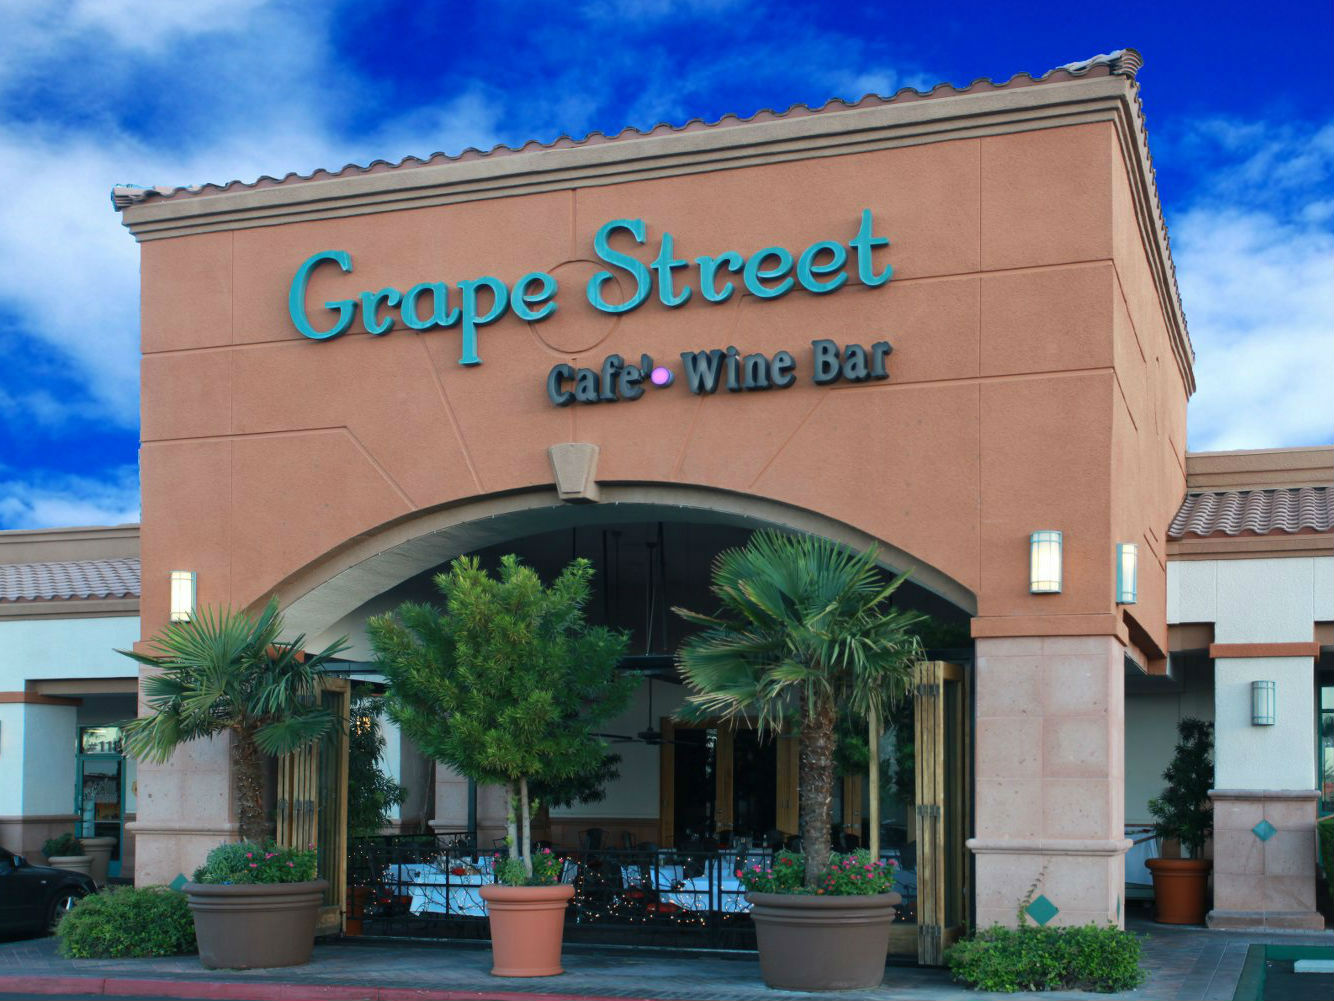 Grape Street Cafe photo